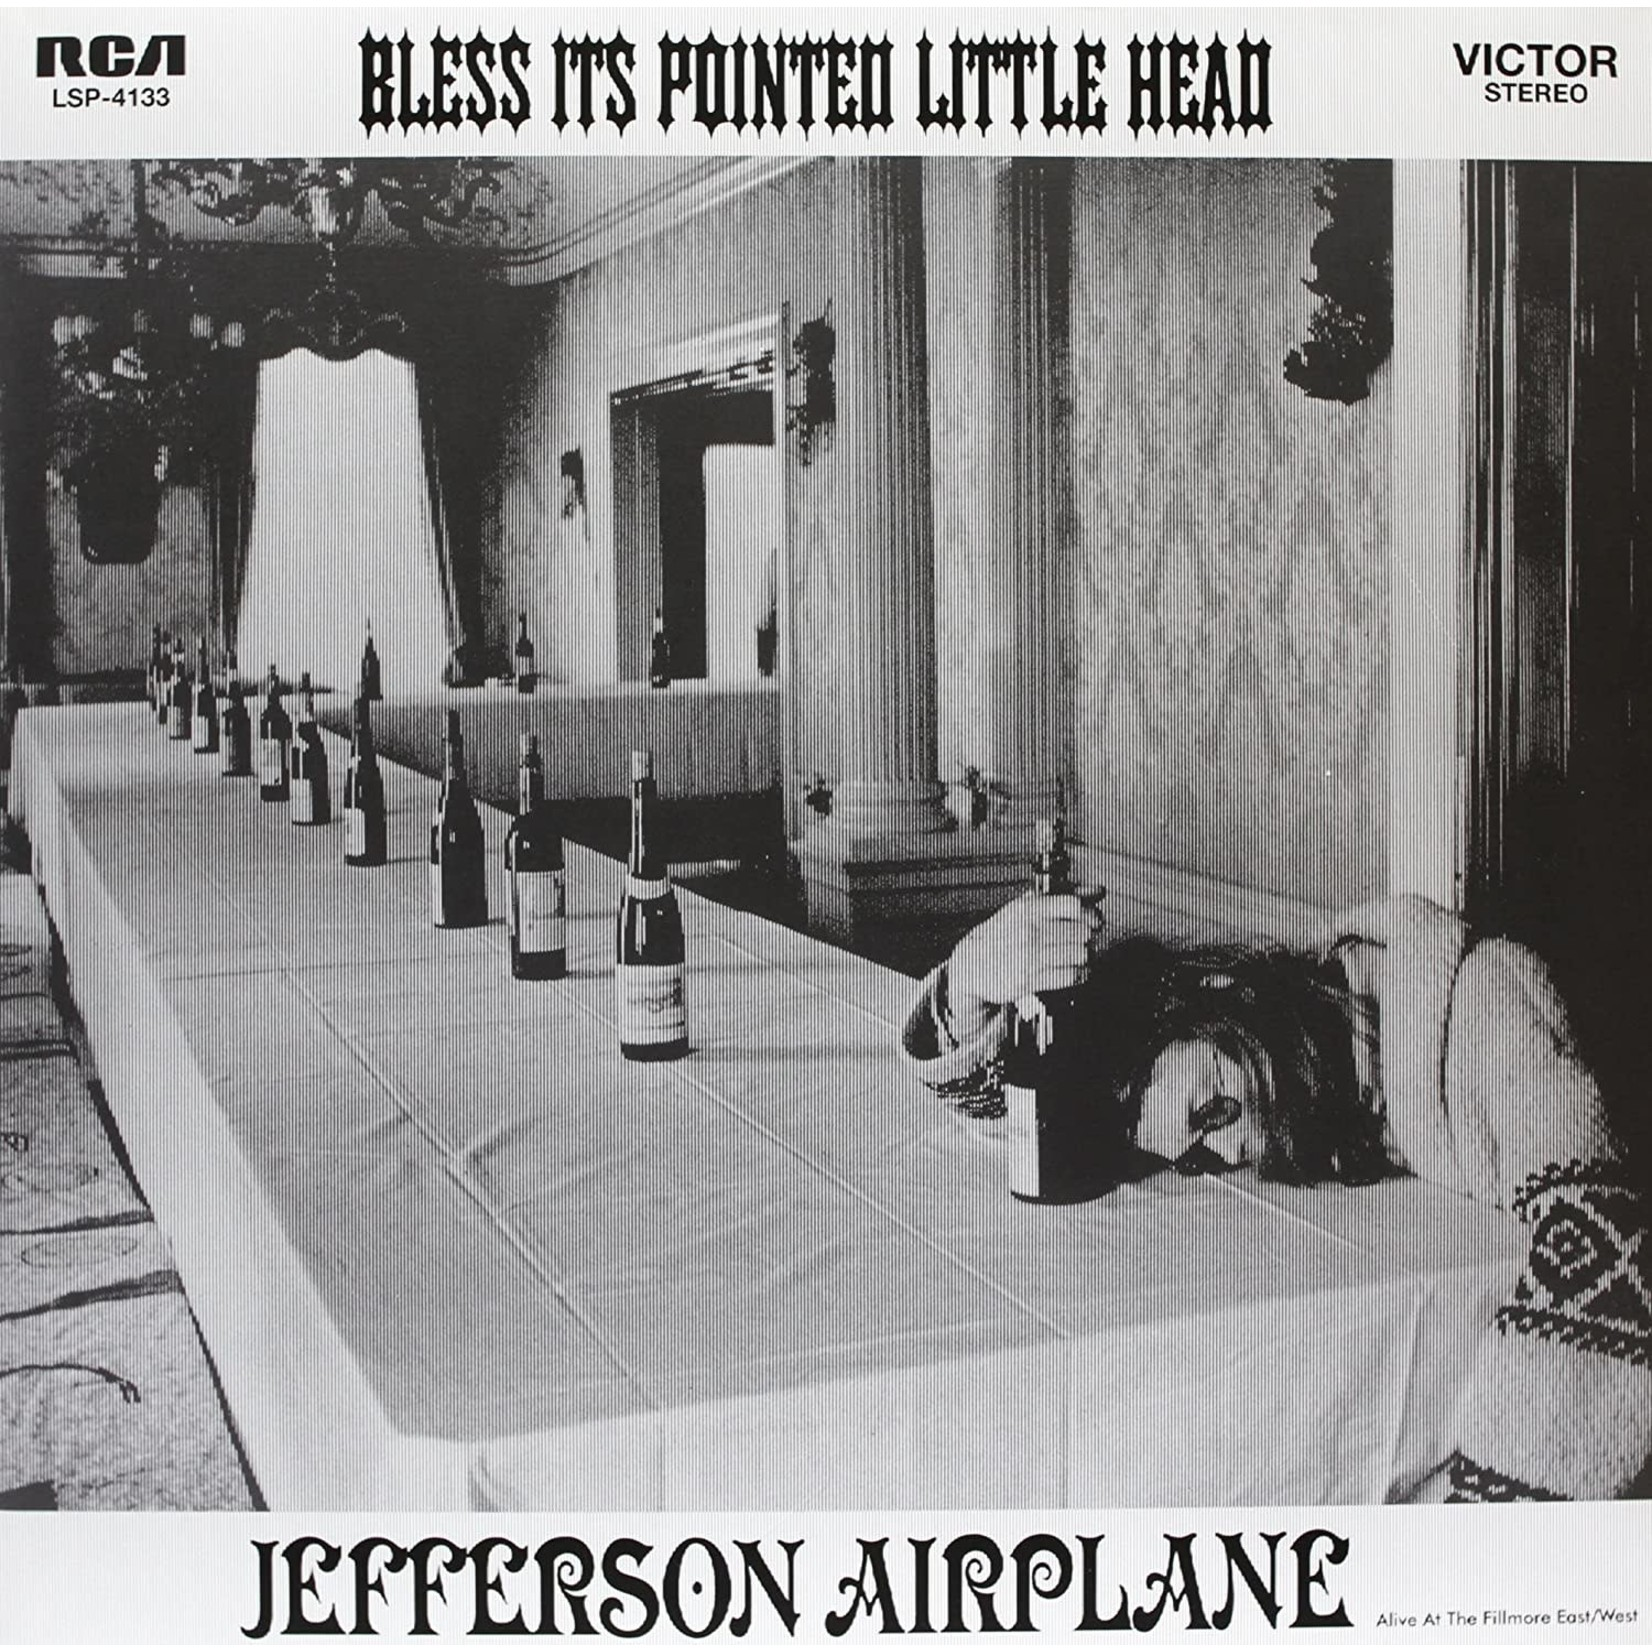 [New] Jefferson Airplane: Bless Its Pointed Little Head